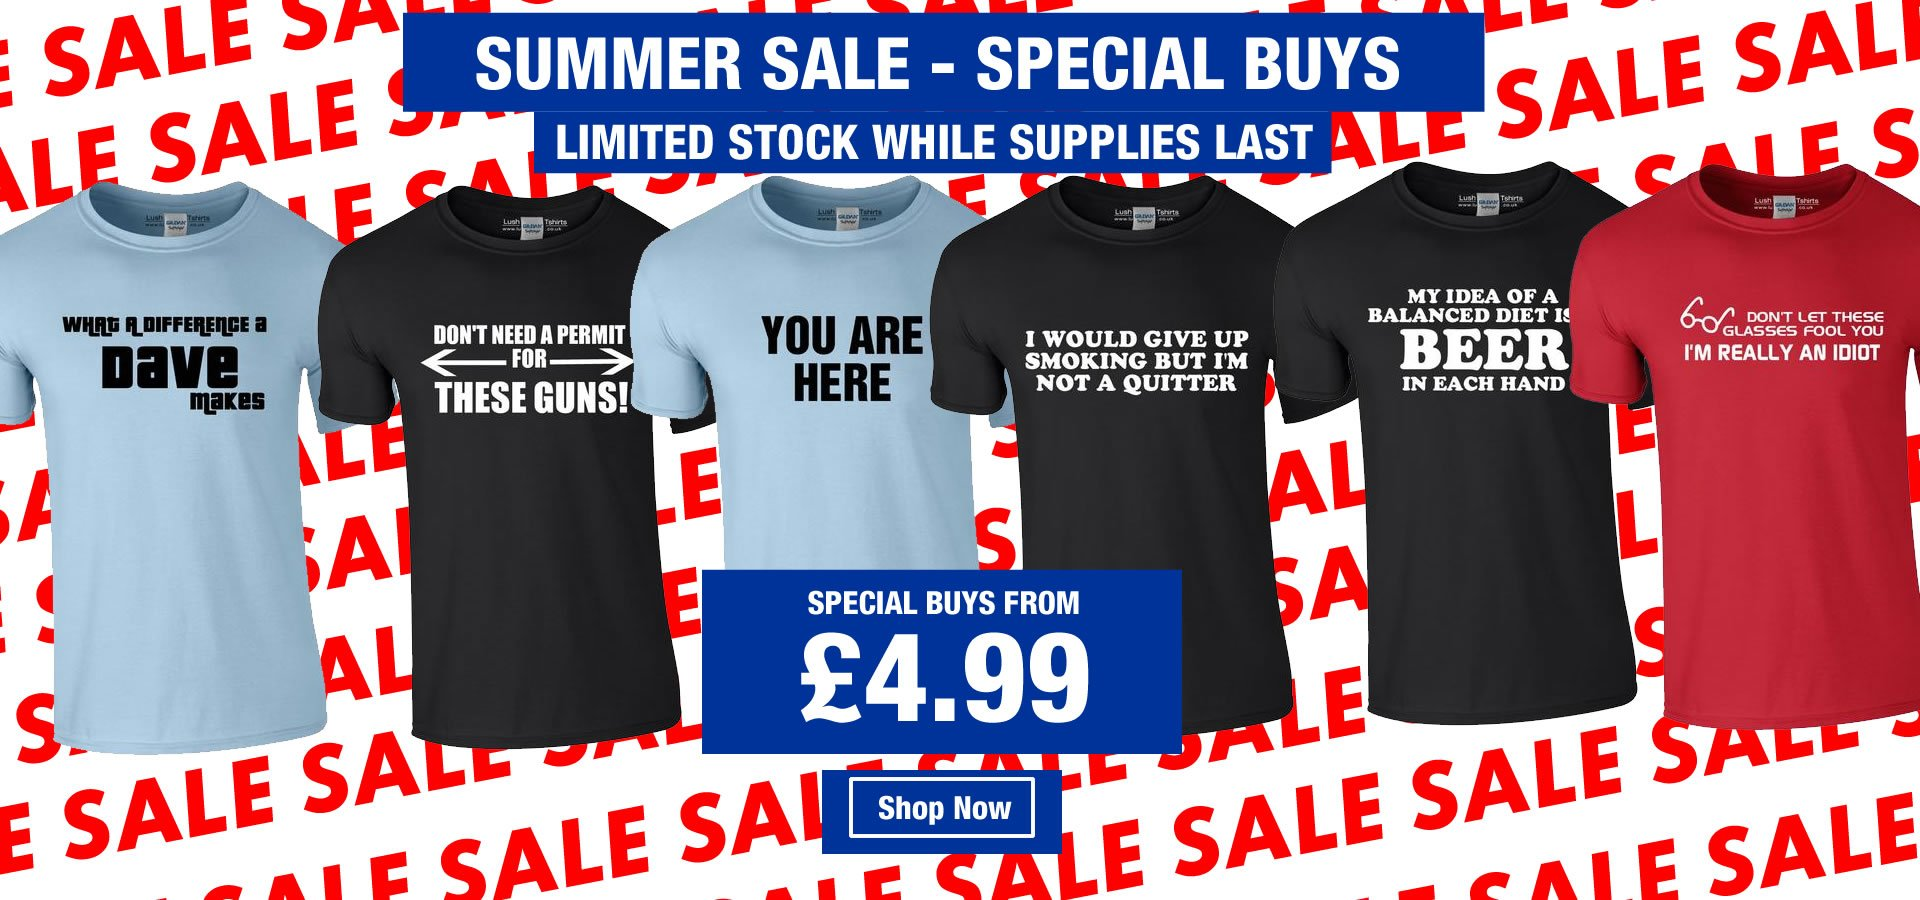 Brand New Tees For Your Summer Wardrobe